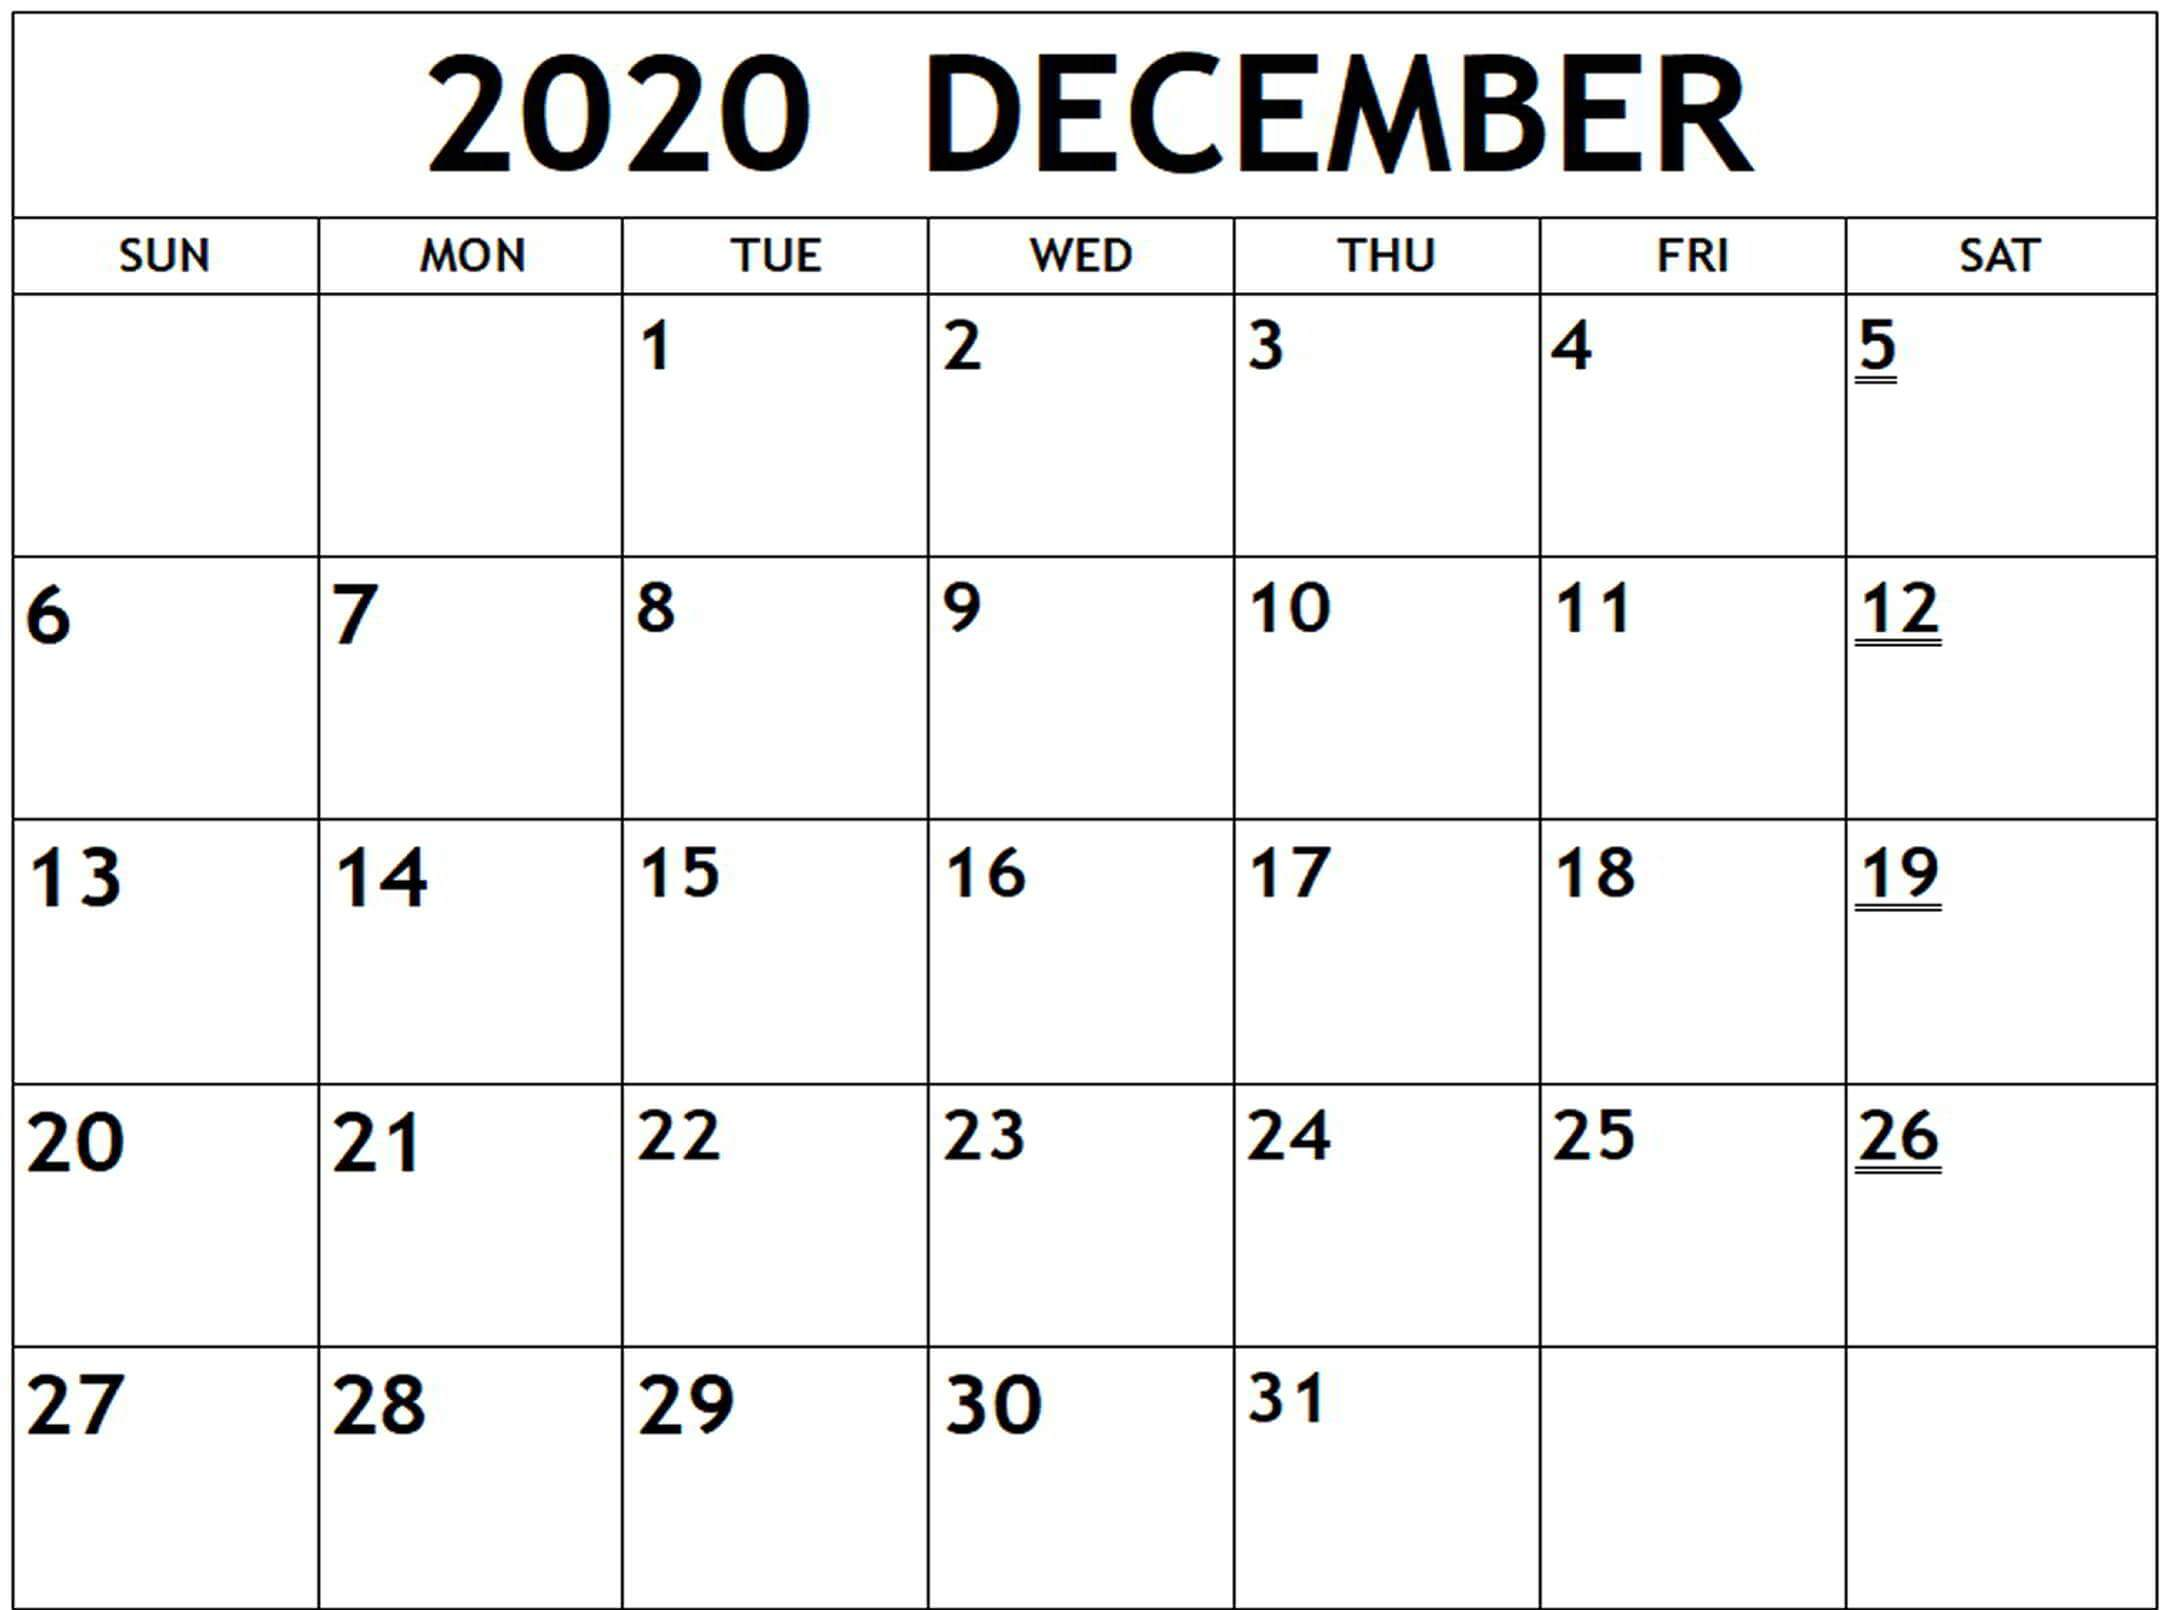 Fillable December 2020 Calendar Word